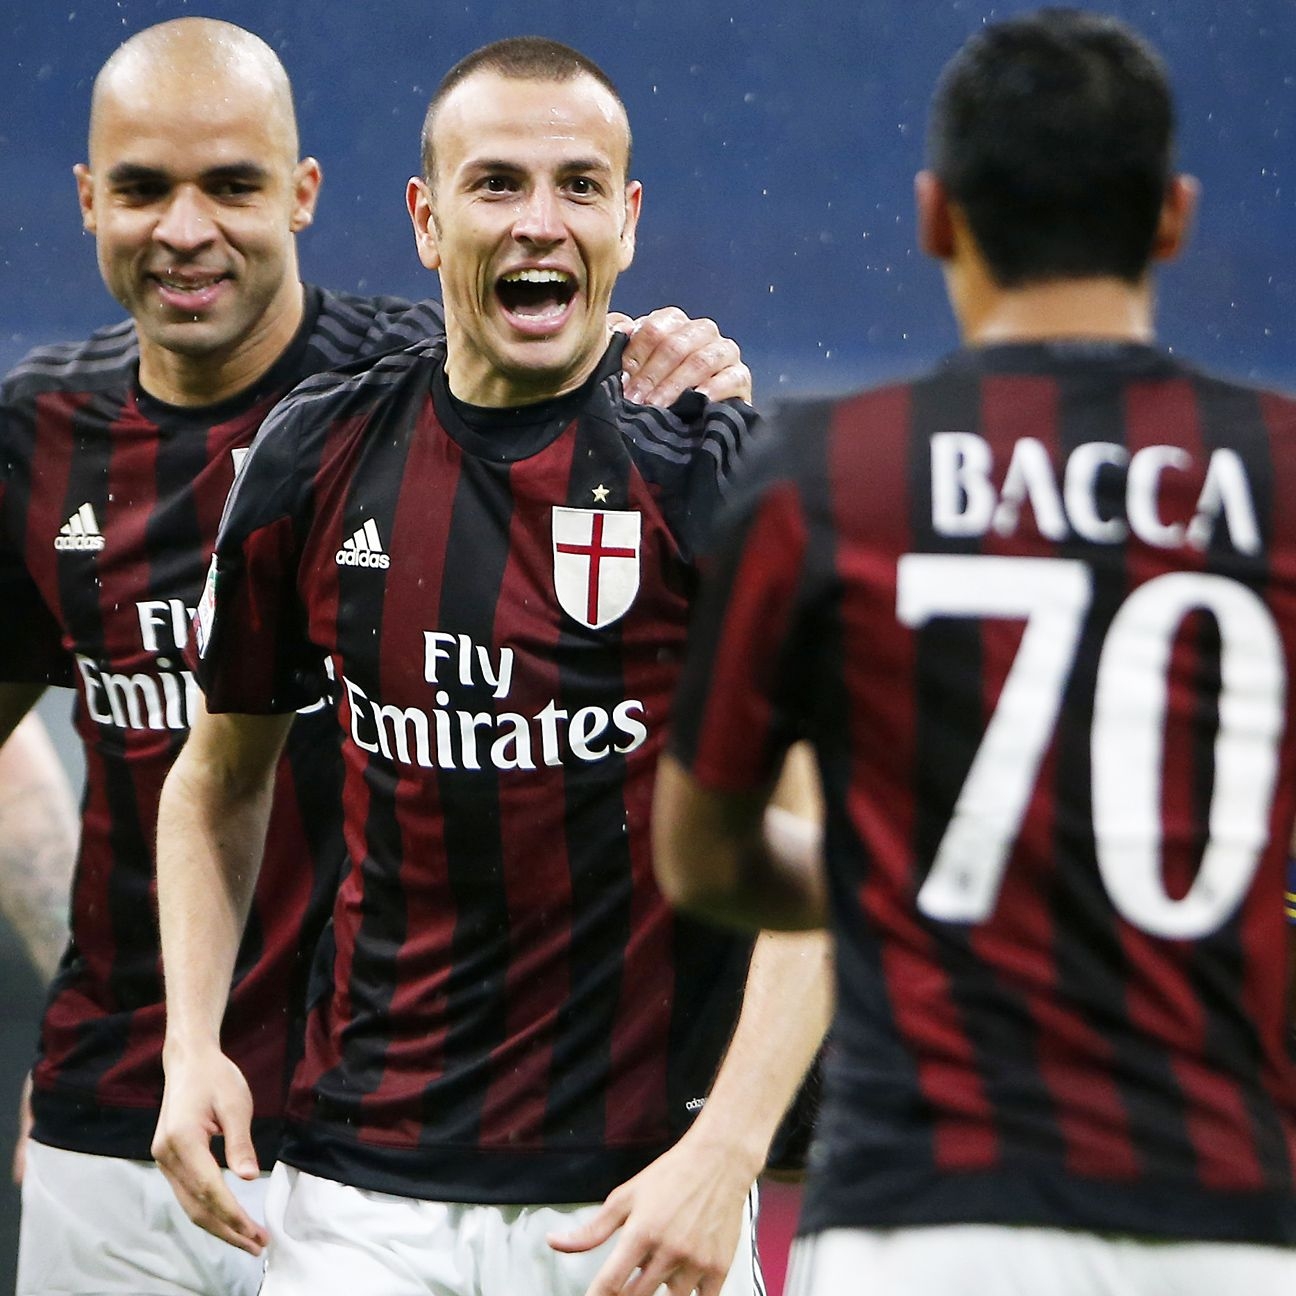 Milan will be out to extend their unbeaten streak to six when they face Juventus on Saturday.